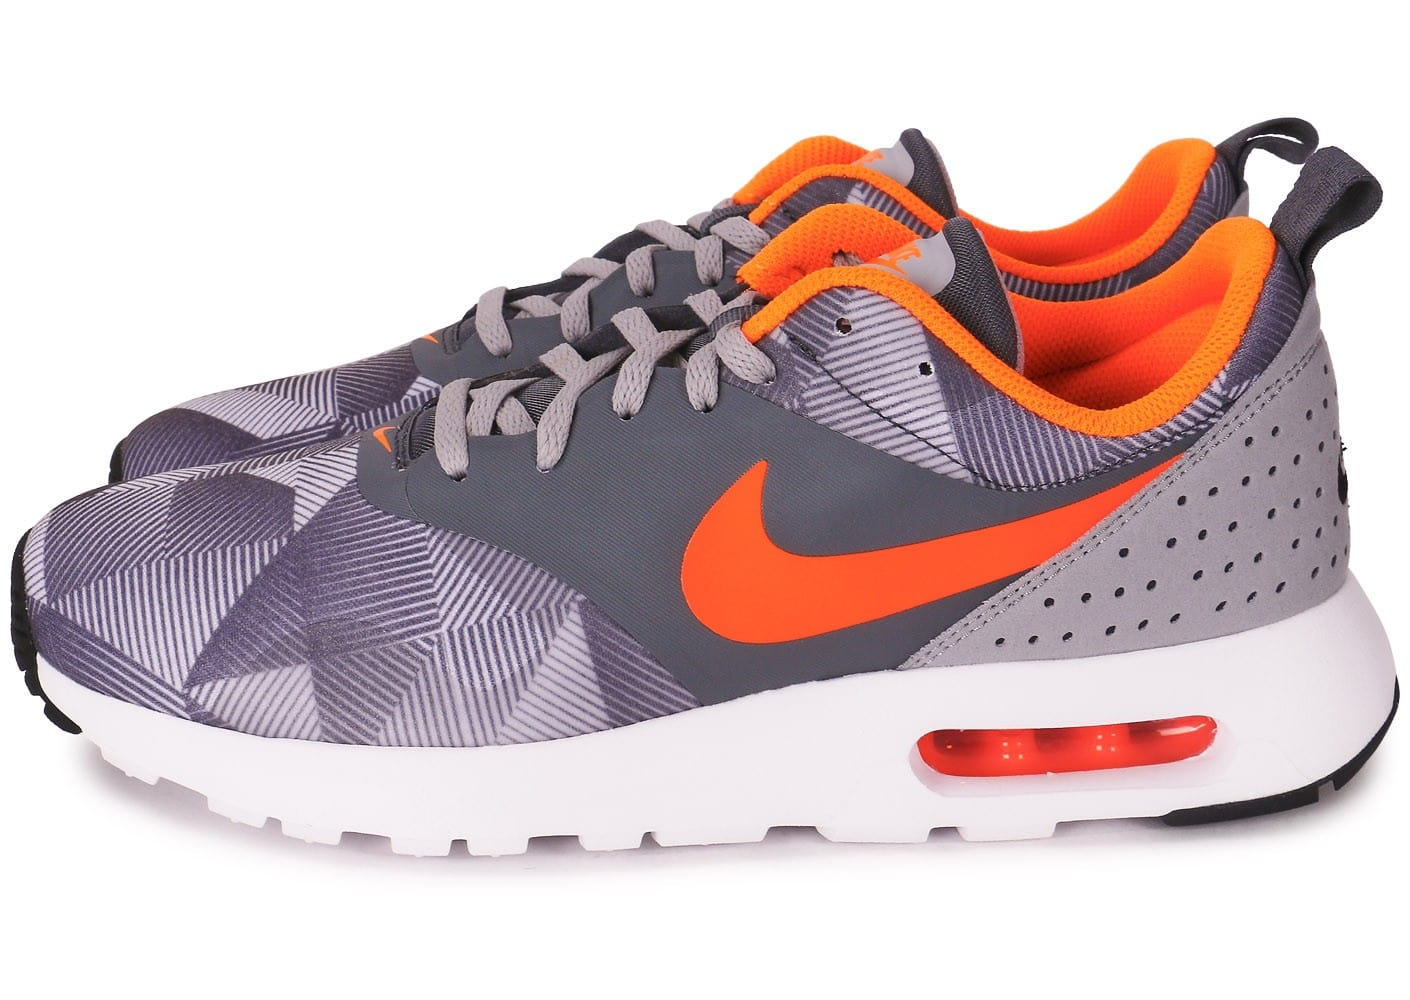 Et Orange Baskets Air Nike Tavas Chaussures Max Print Homme Gris 8Ovn0PNywm